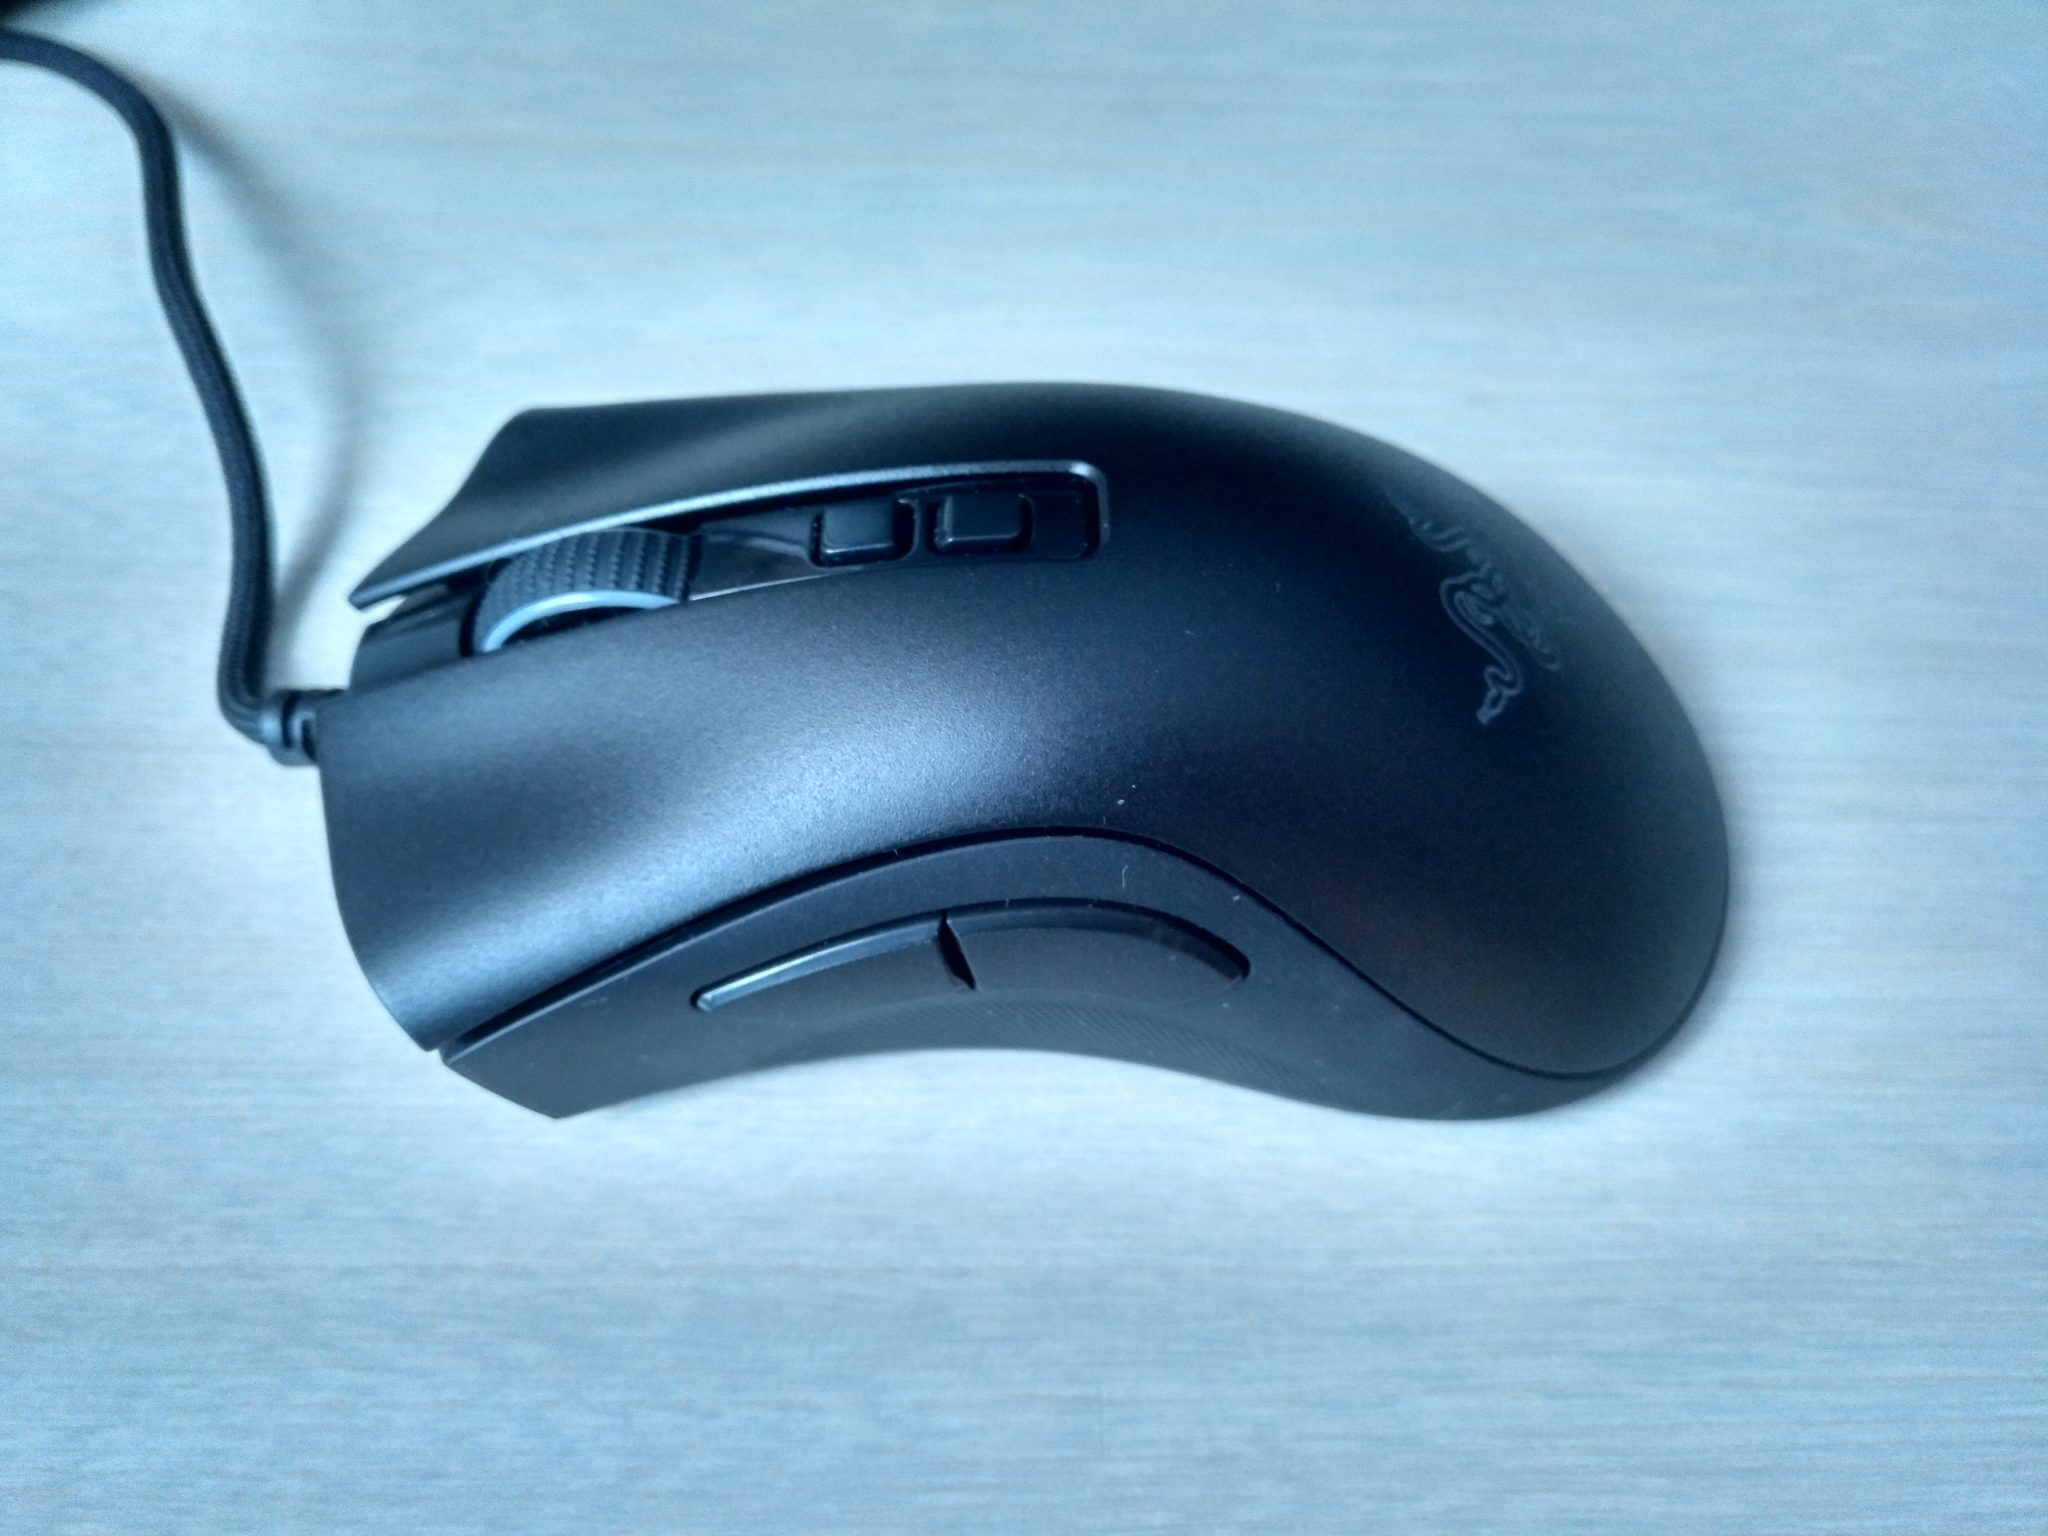 Razer™ DeathAdder V2 - Review